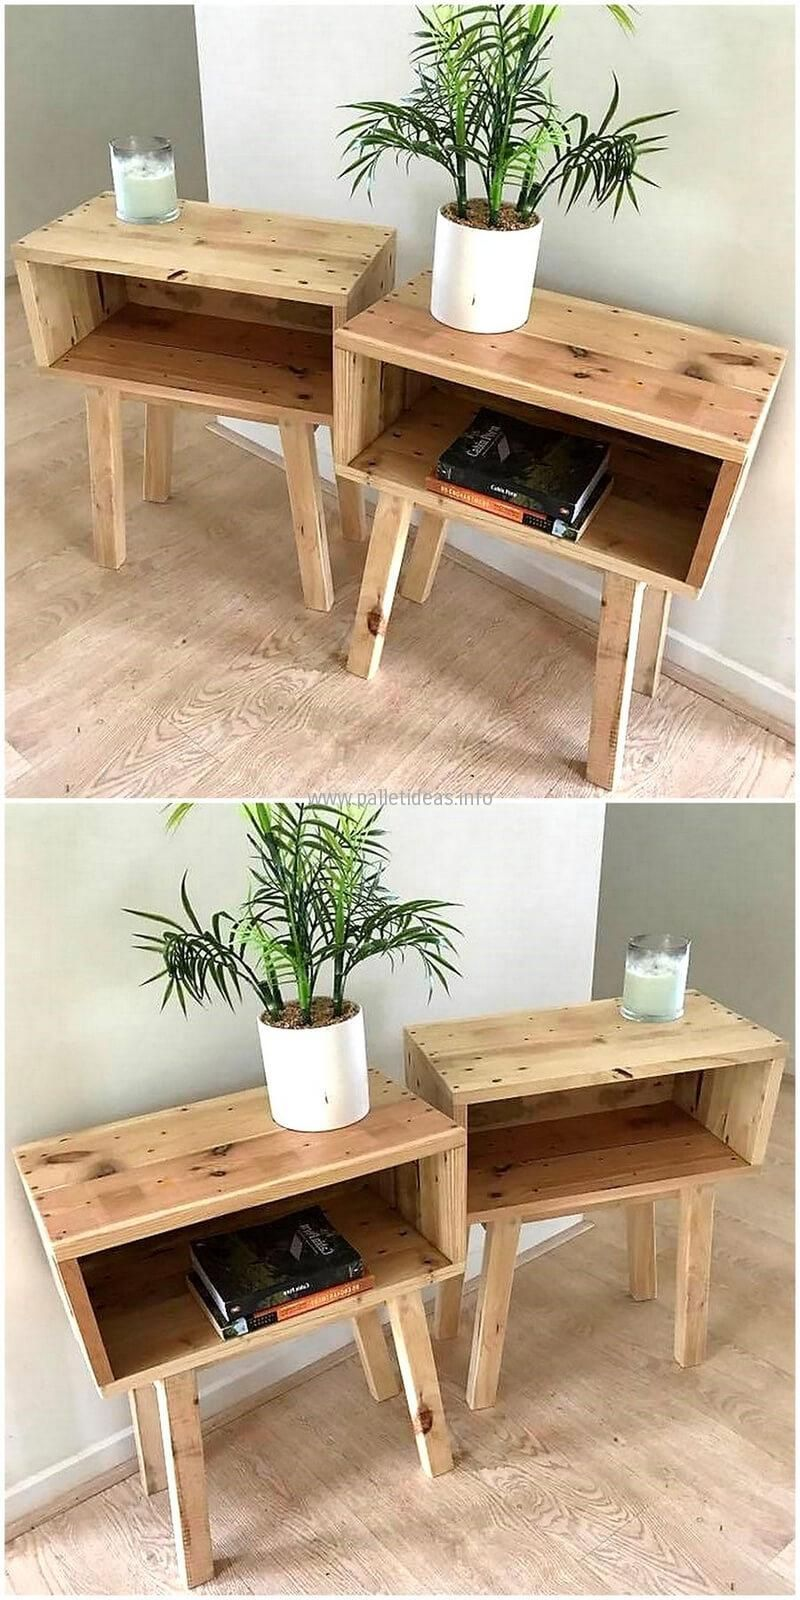 Hey Möbel 15 Budget Friendly Unique Diy Pallet Projects Ideas Pellet